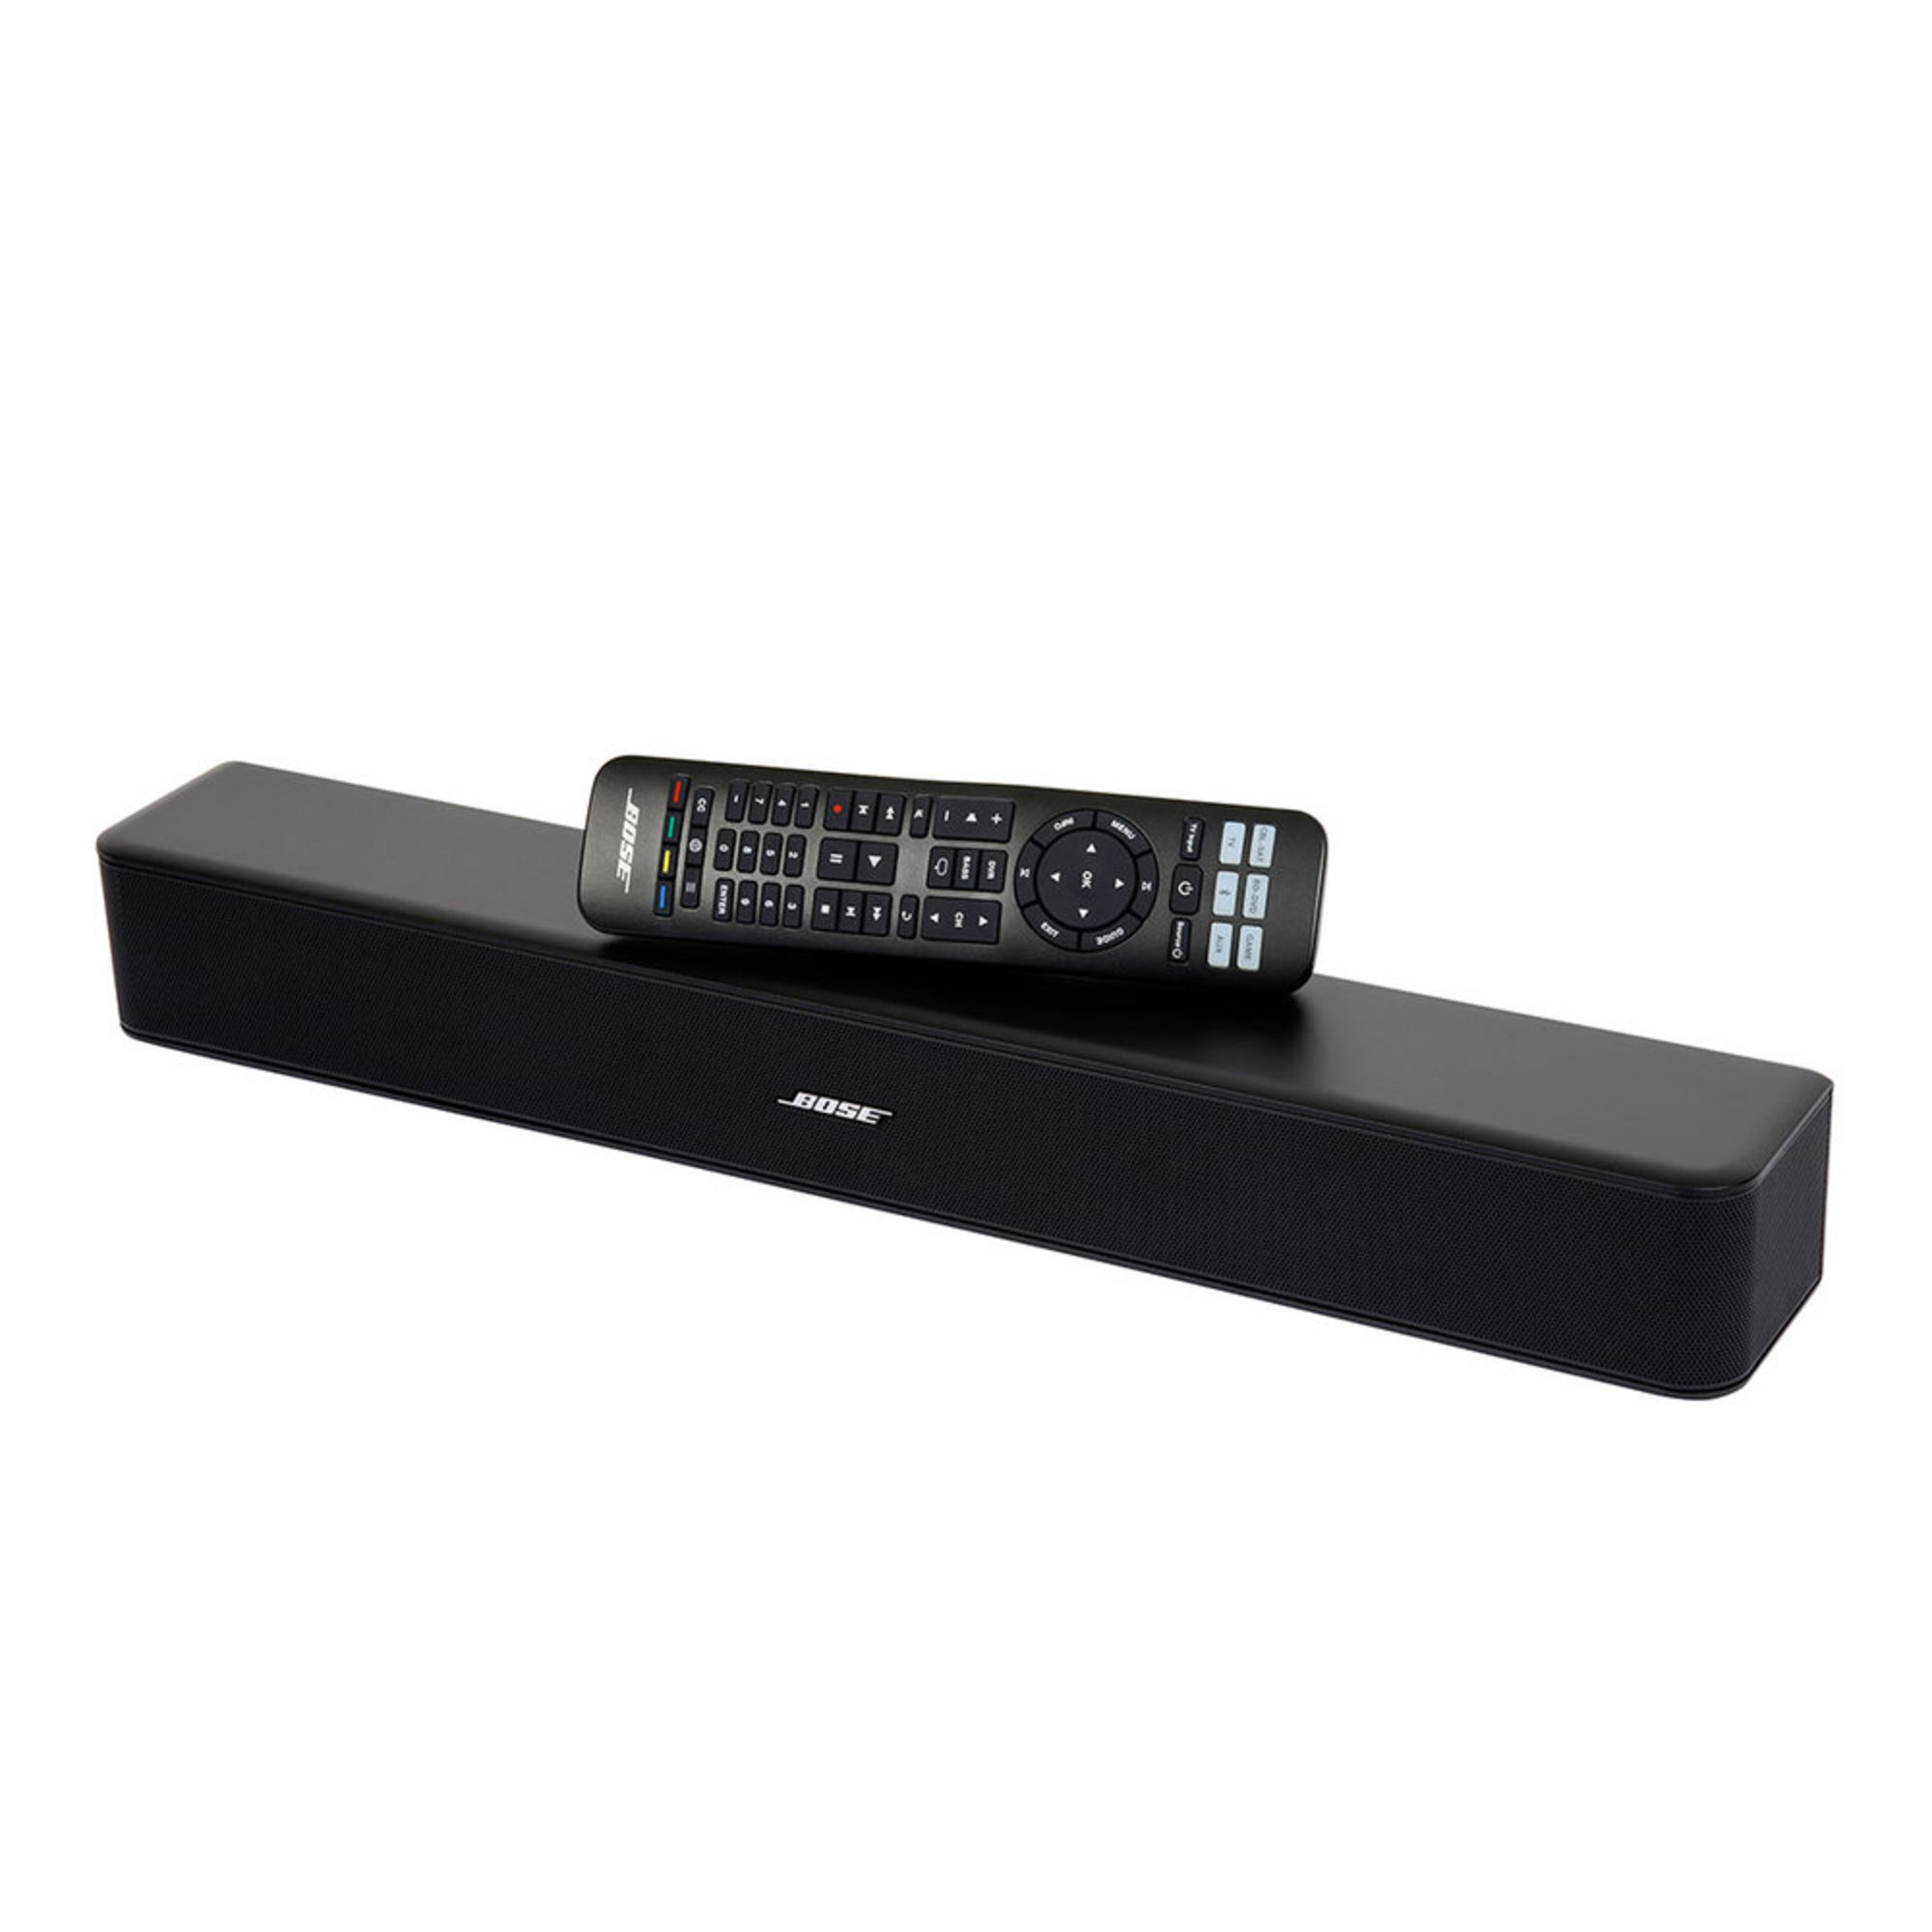 bose solo 5 tv sound system soundbar systems electronics shop your navy exchange. Black Bedroom Furniture Sets. Home Design Ideas